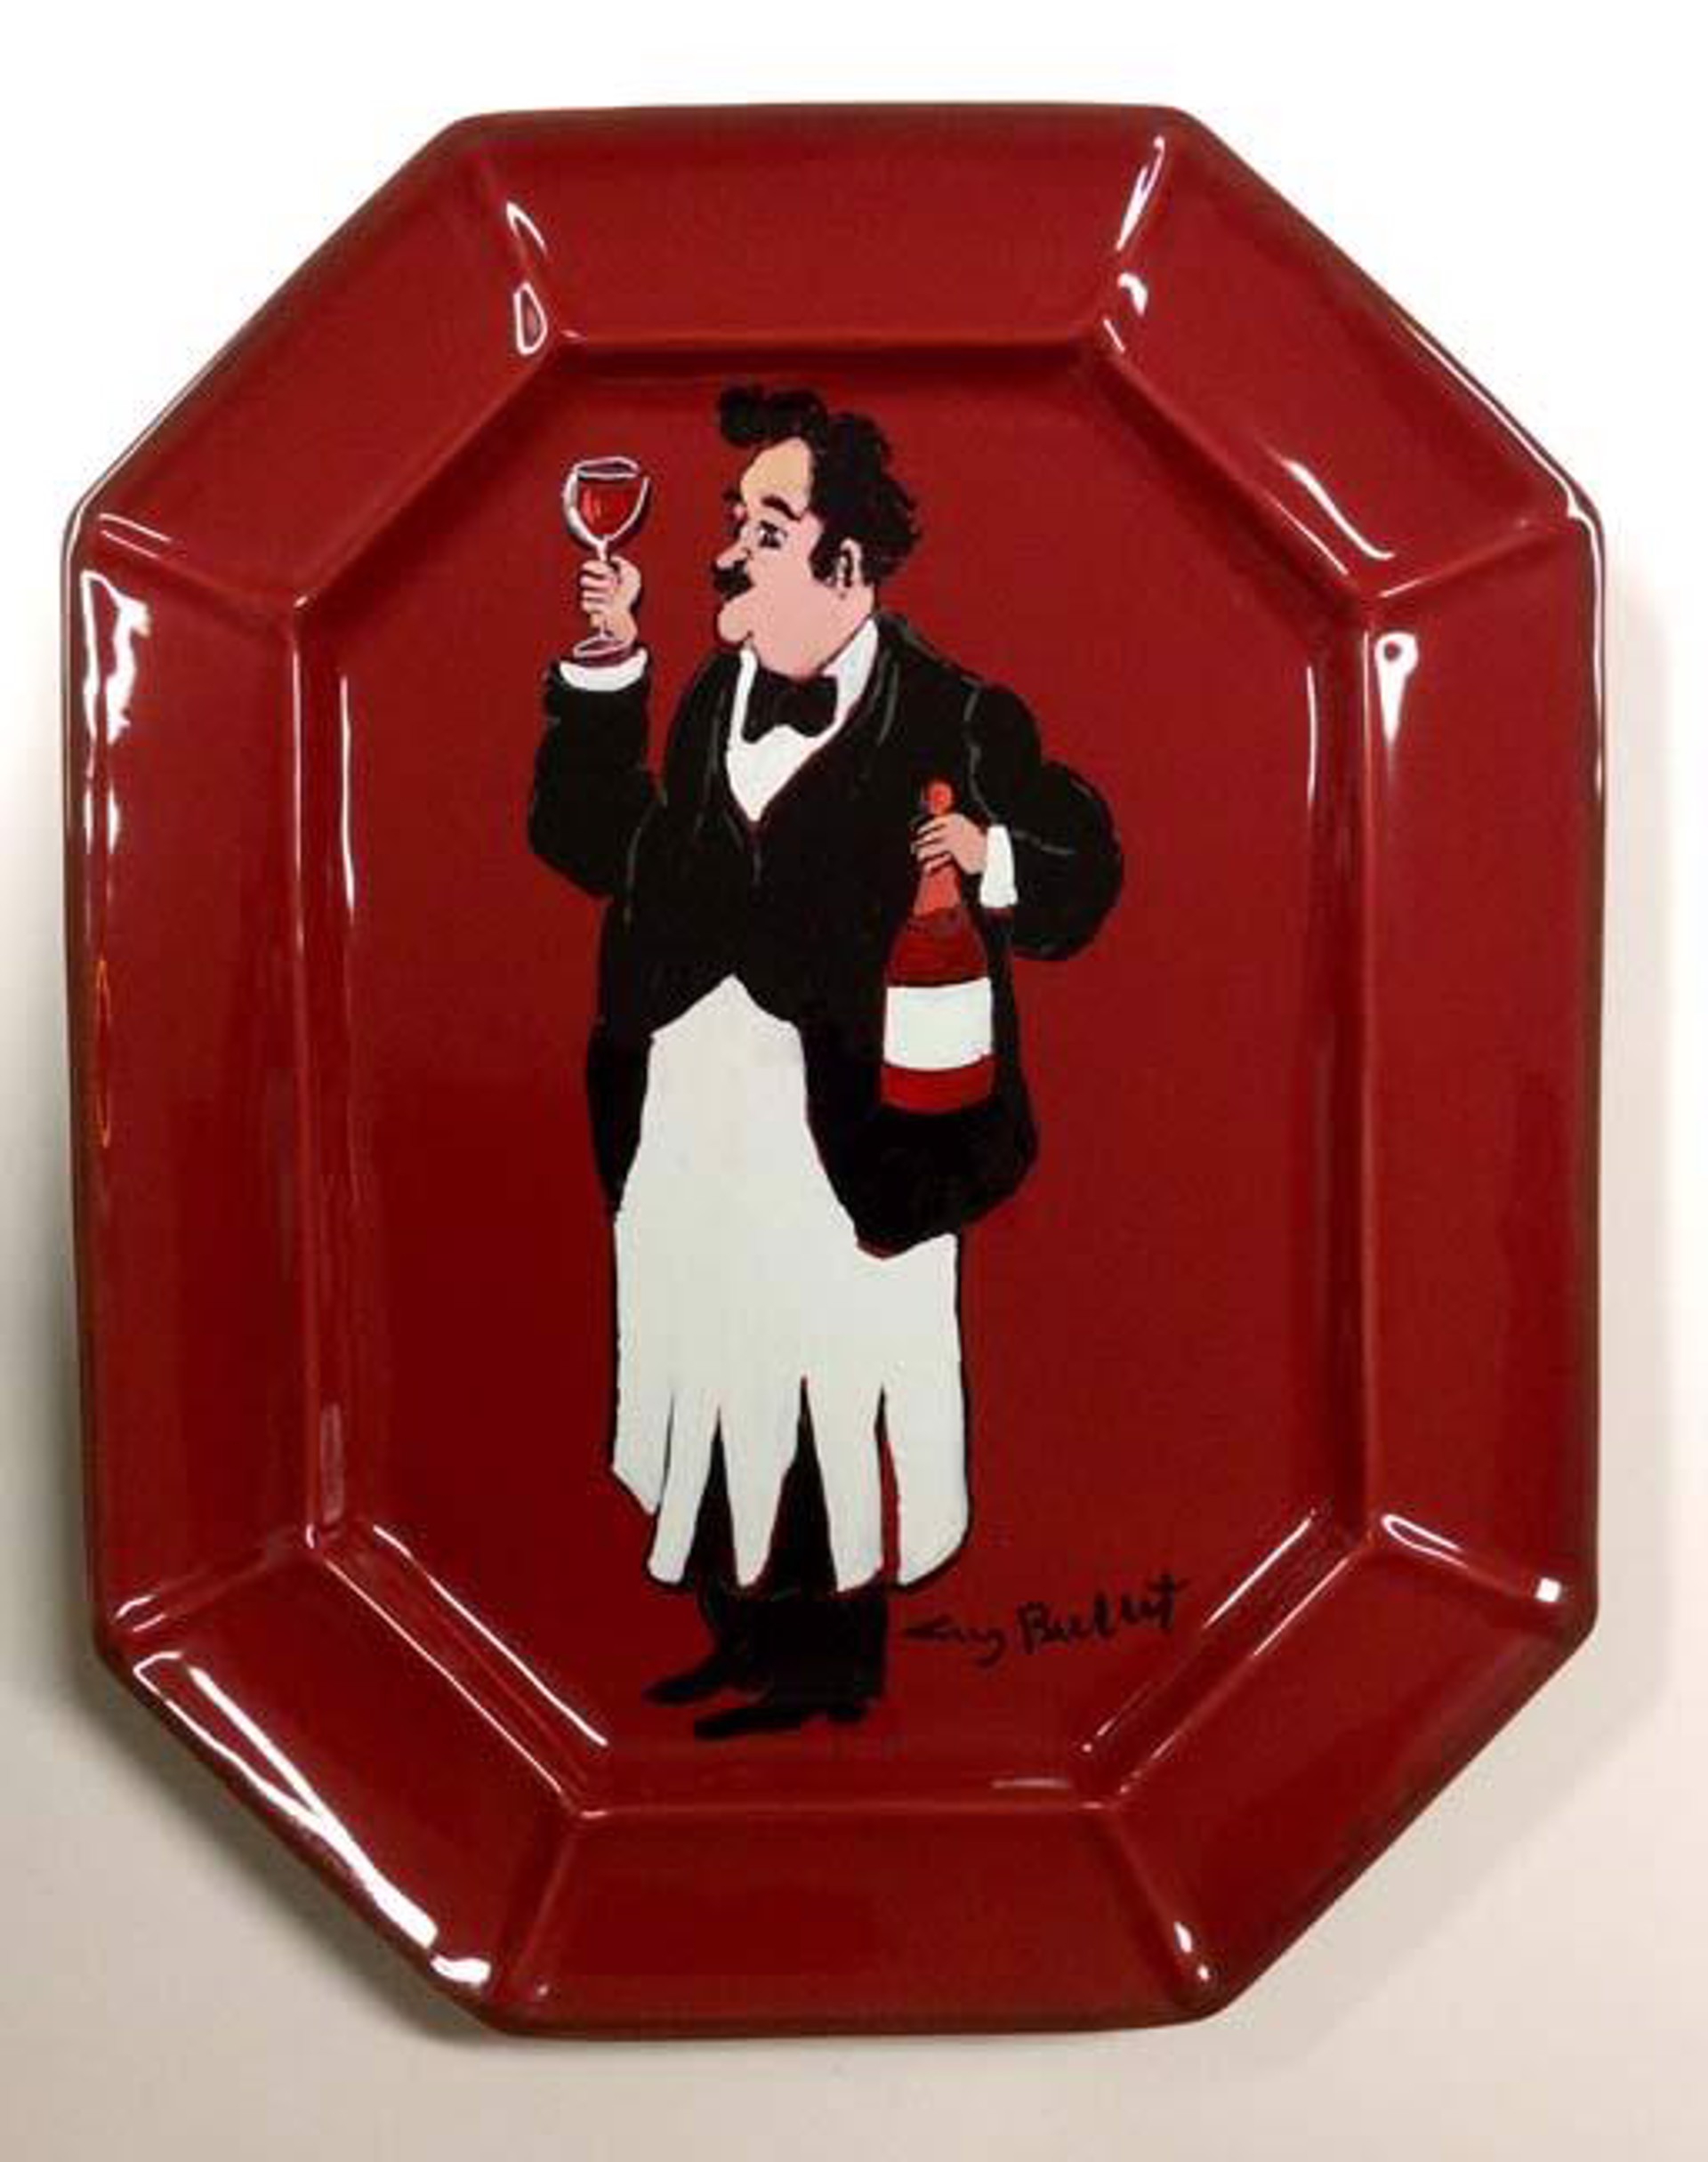 Platter (A Fine Burgundy - Red)* by Guy Buffet